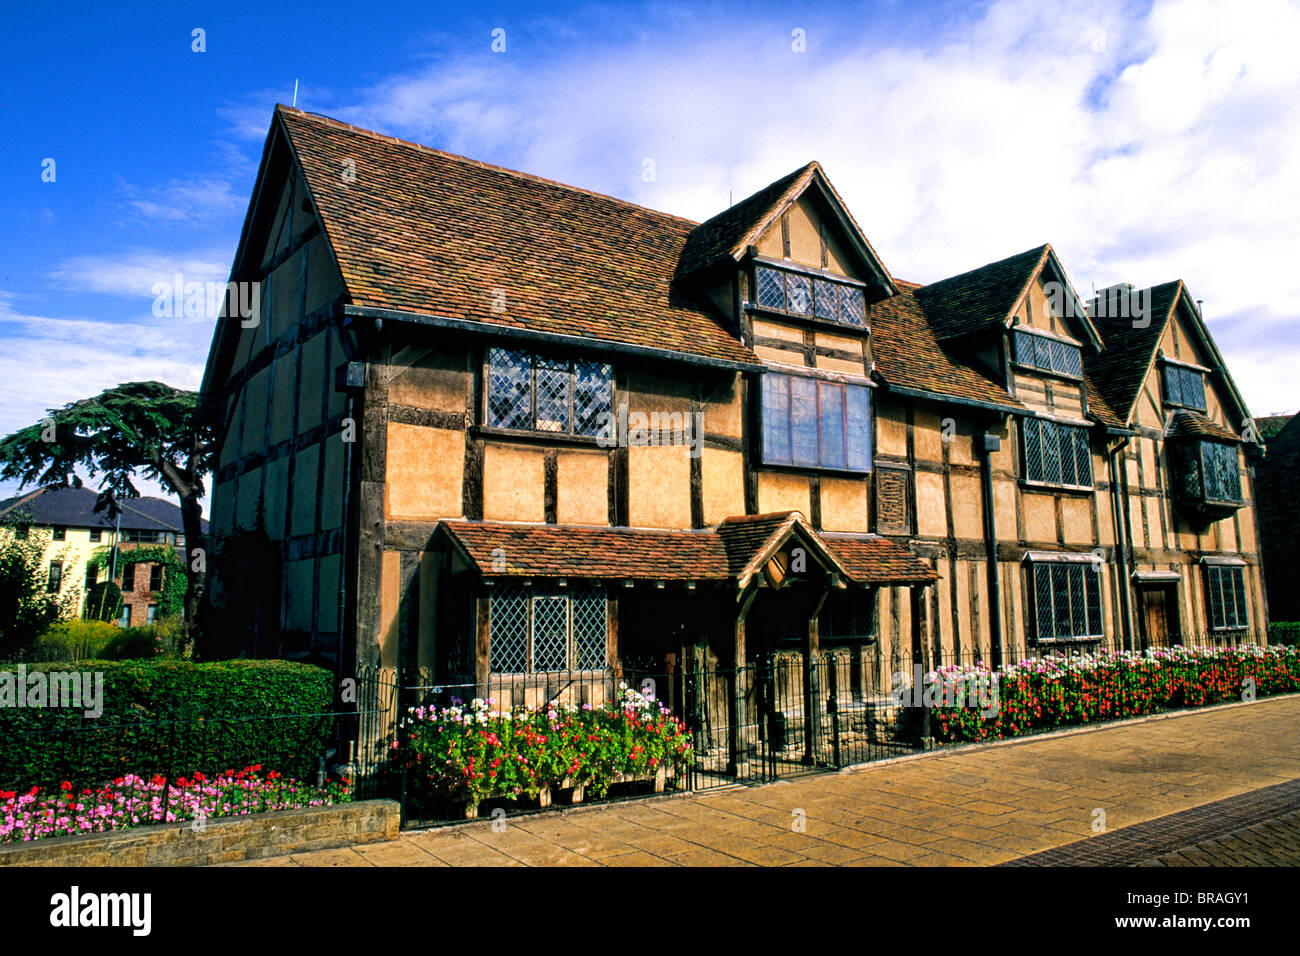 William Shakespeares Birthplace And Home 1564 Stratford Upon Avon England